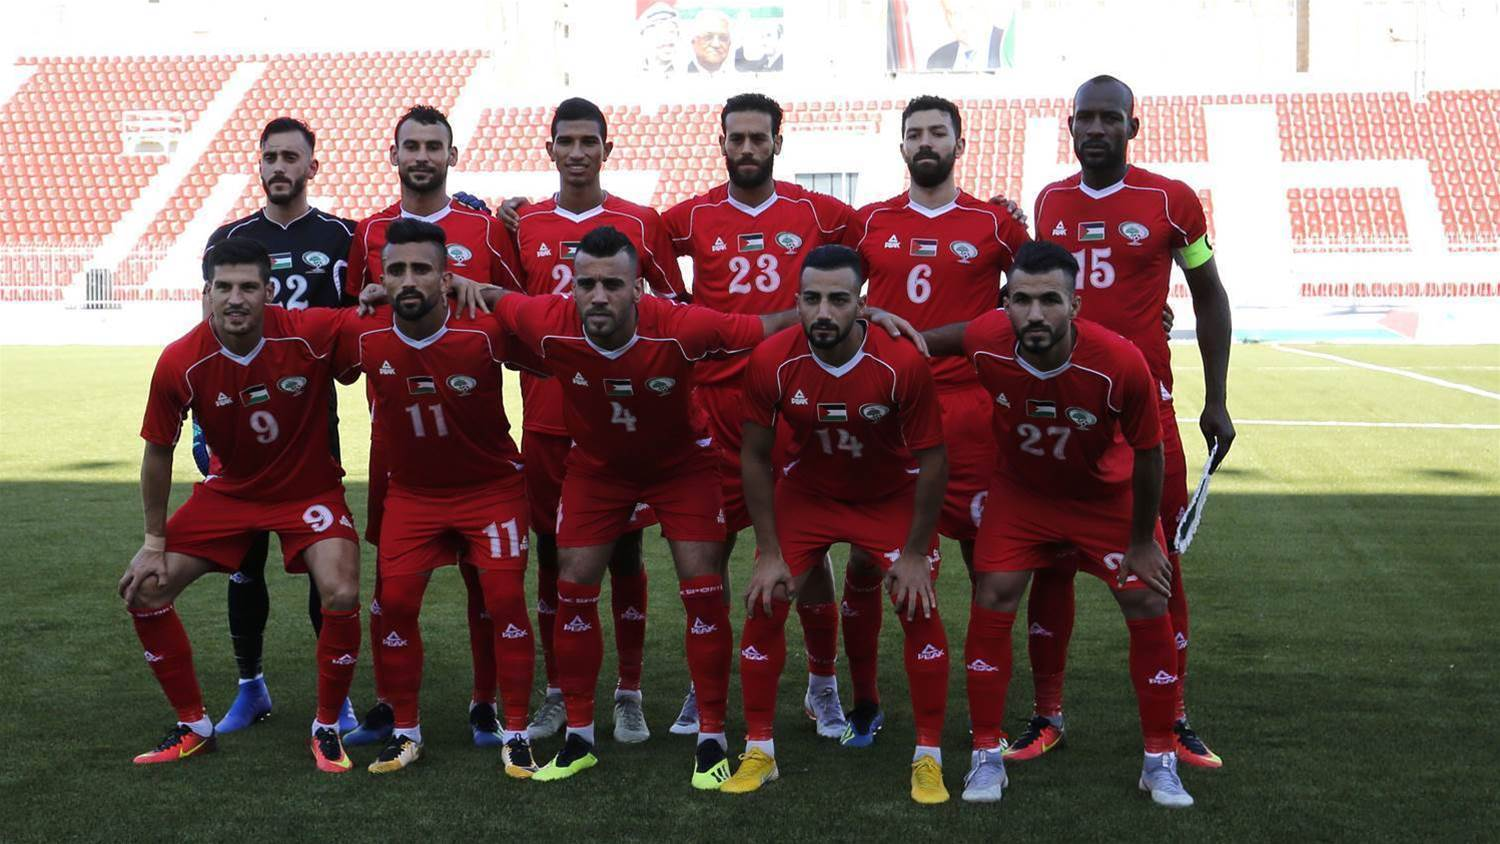 Palestine issue Asian Cup warning